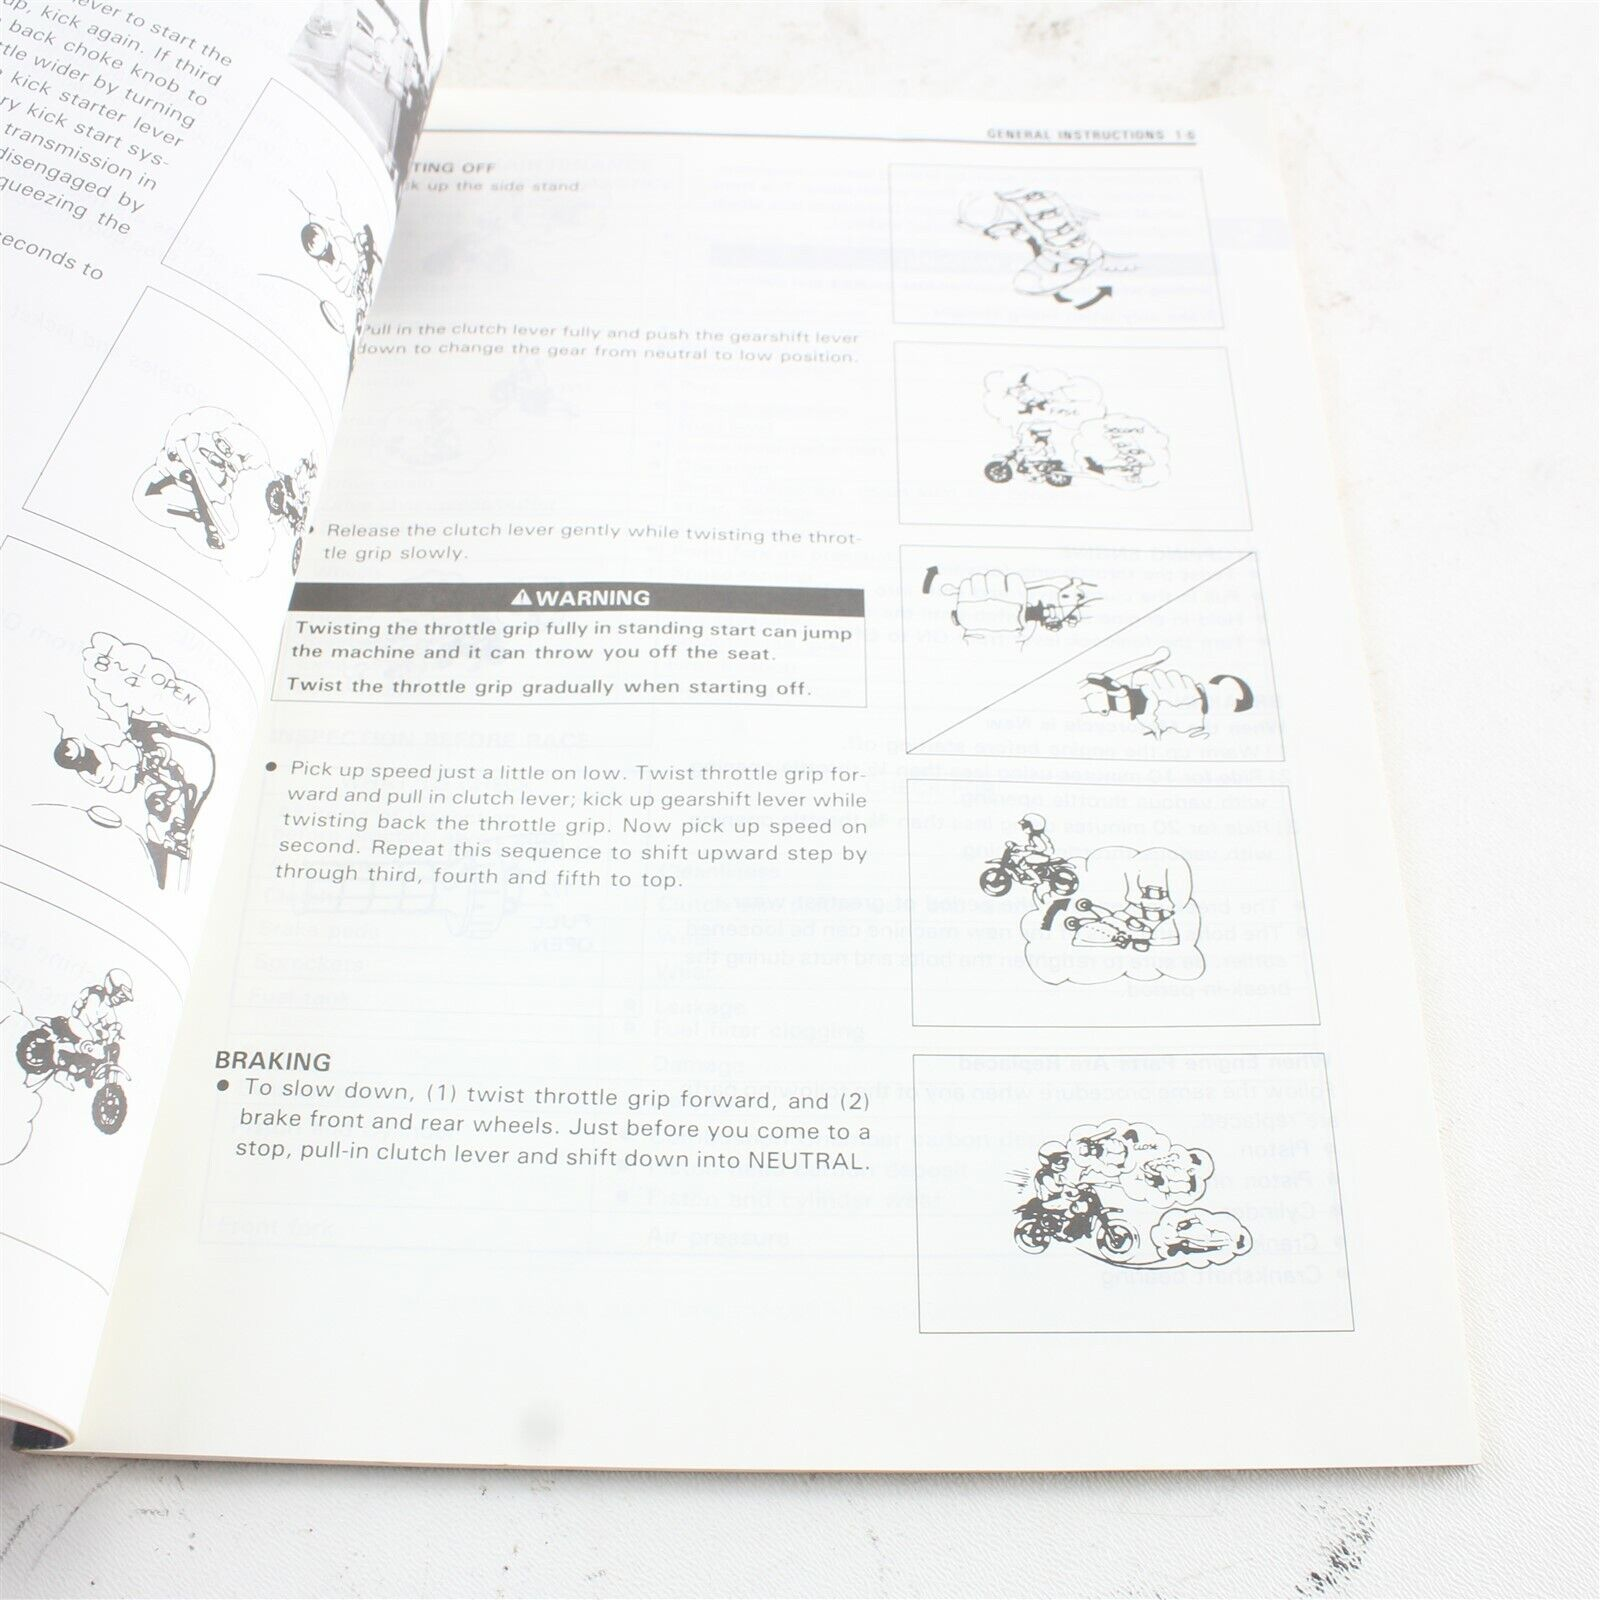 1995 Suzuki RM80 Owners Service Information Manual Booklet